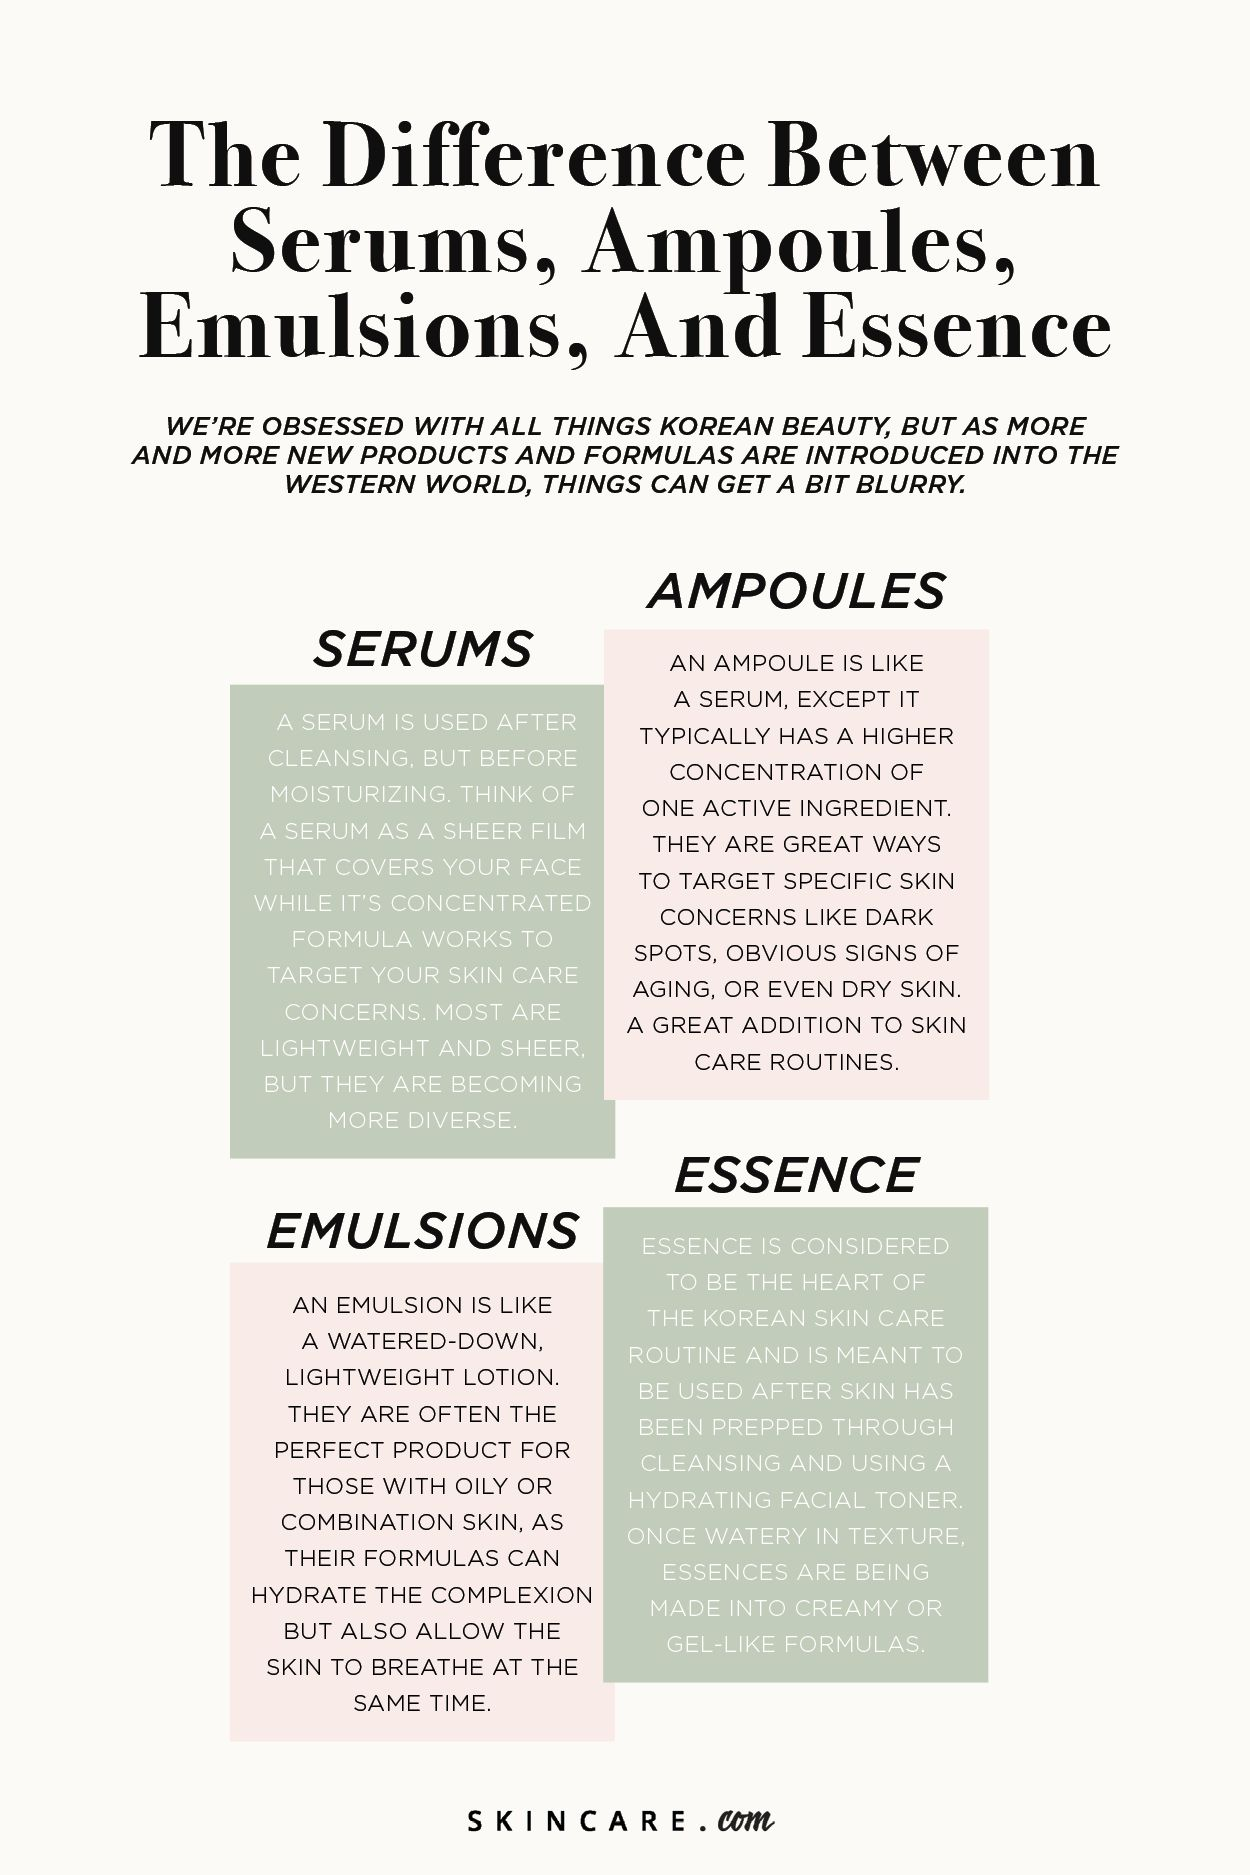 How To Use Serums Vs Essences Vs Emulsions Vs Ampoules Skincare Com By L Oreal Skin Care Regimen Skin Care Routine 40s Skin Care